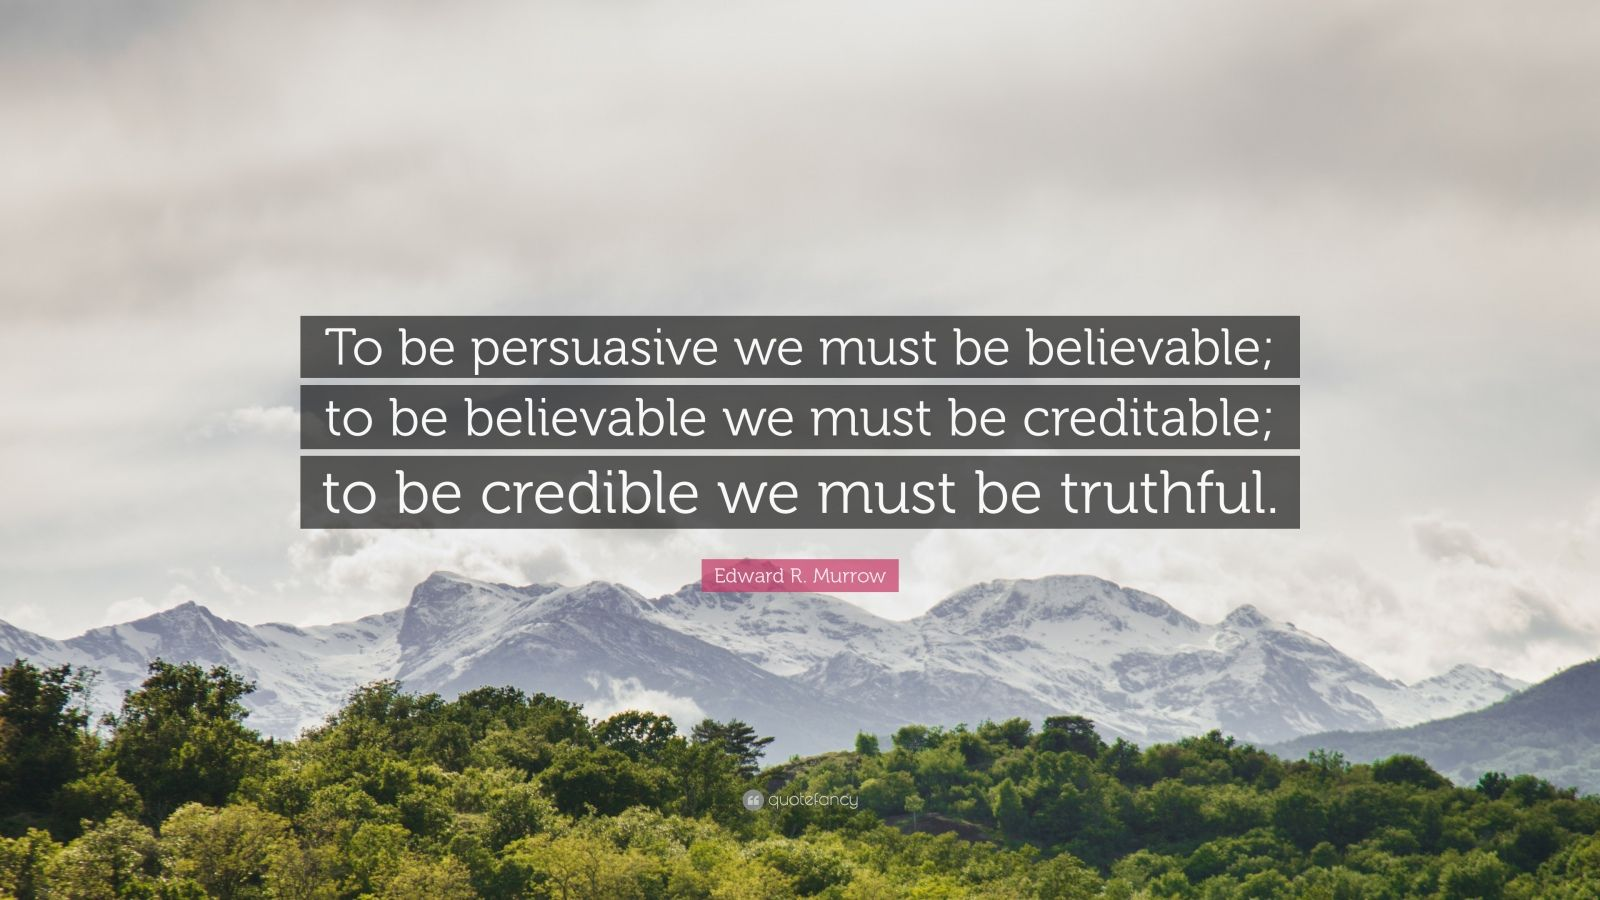 "Edward R. Murrow Quote: ""To be persuasive we must be believable; to be believable we must be creditable; to be credible we must be truthful."""